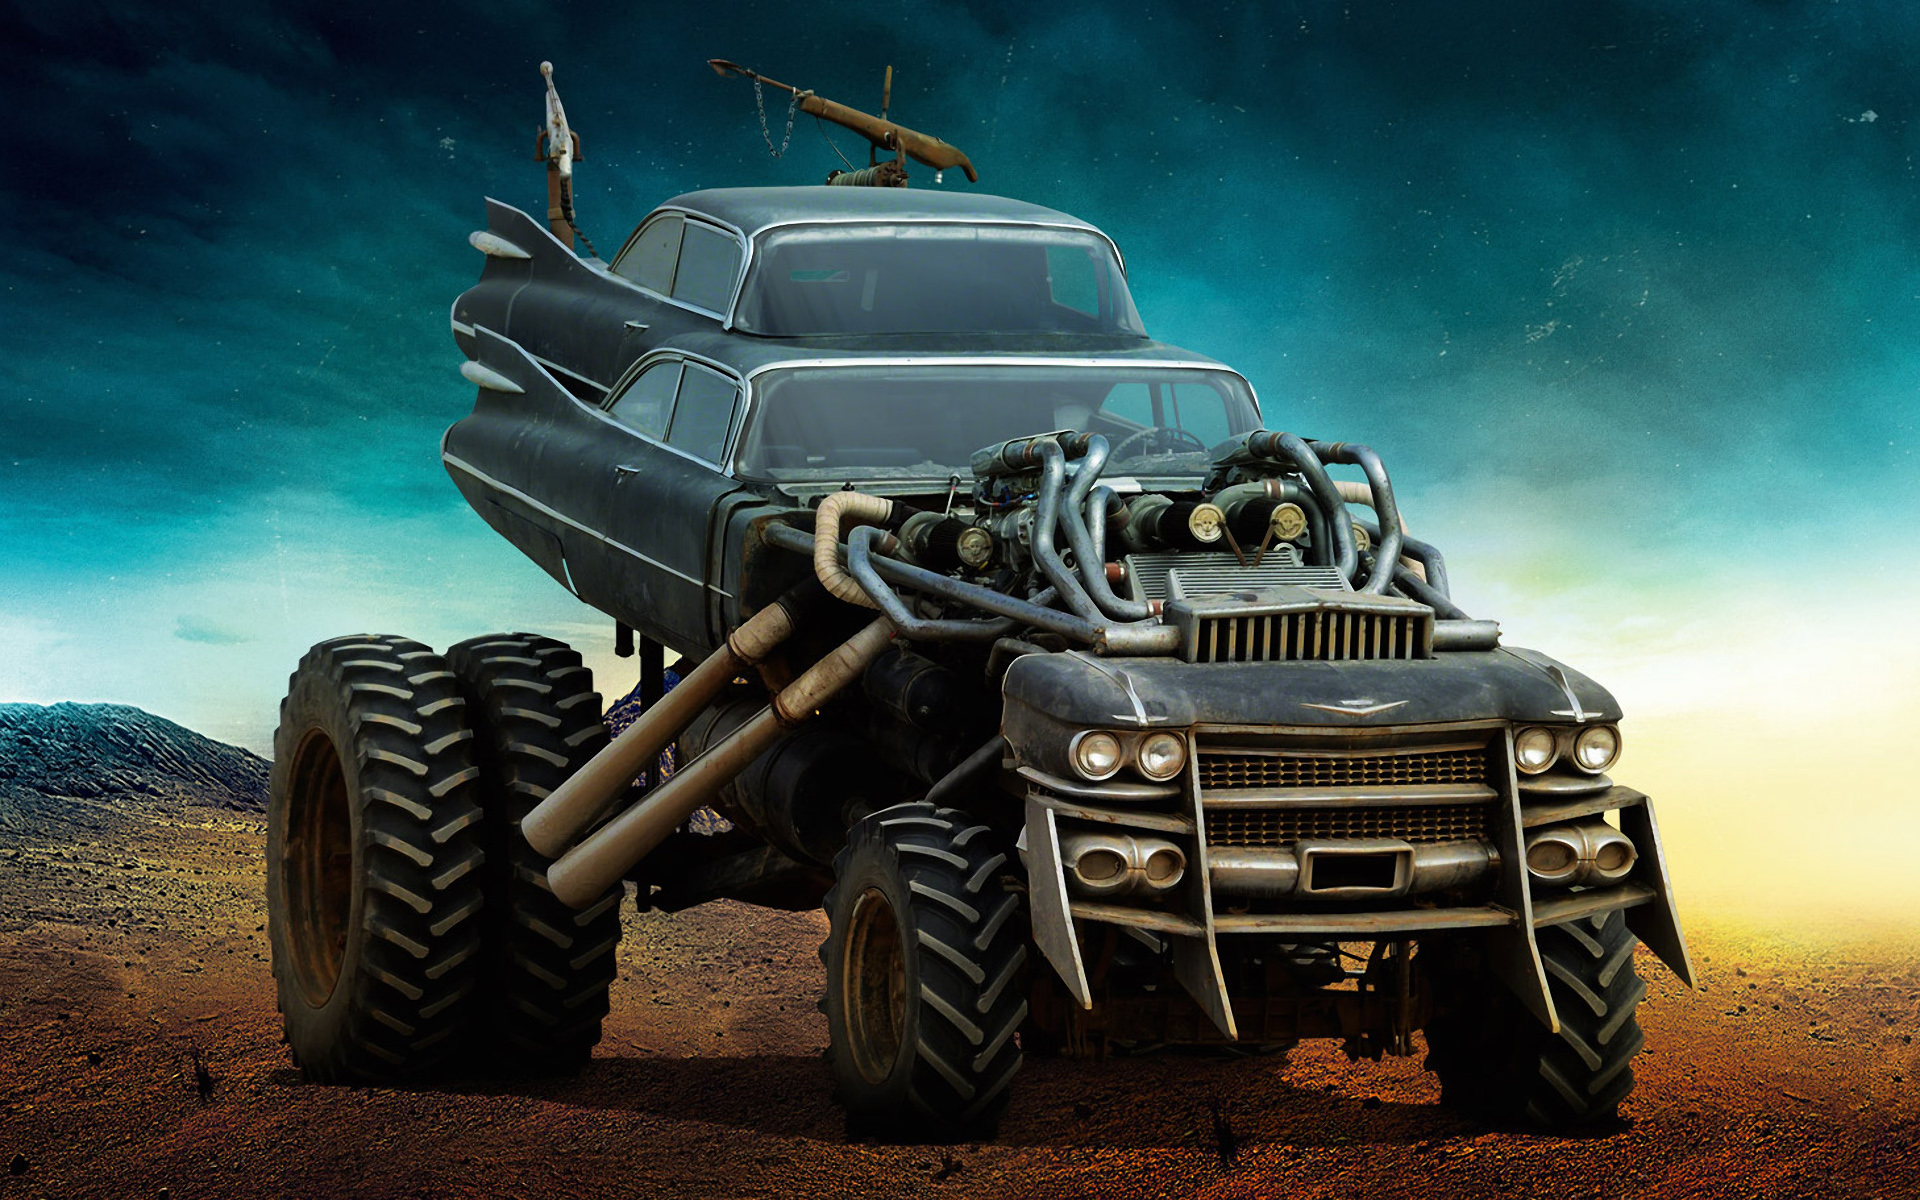 mad max wallpaper images pictures becuo